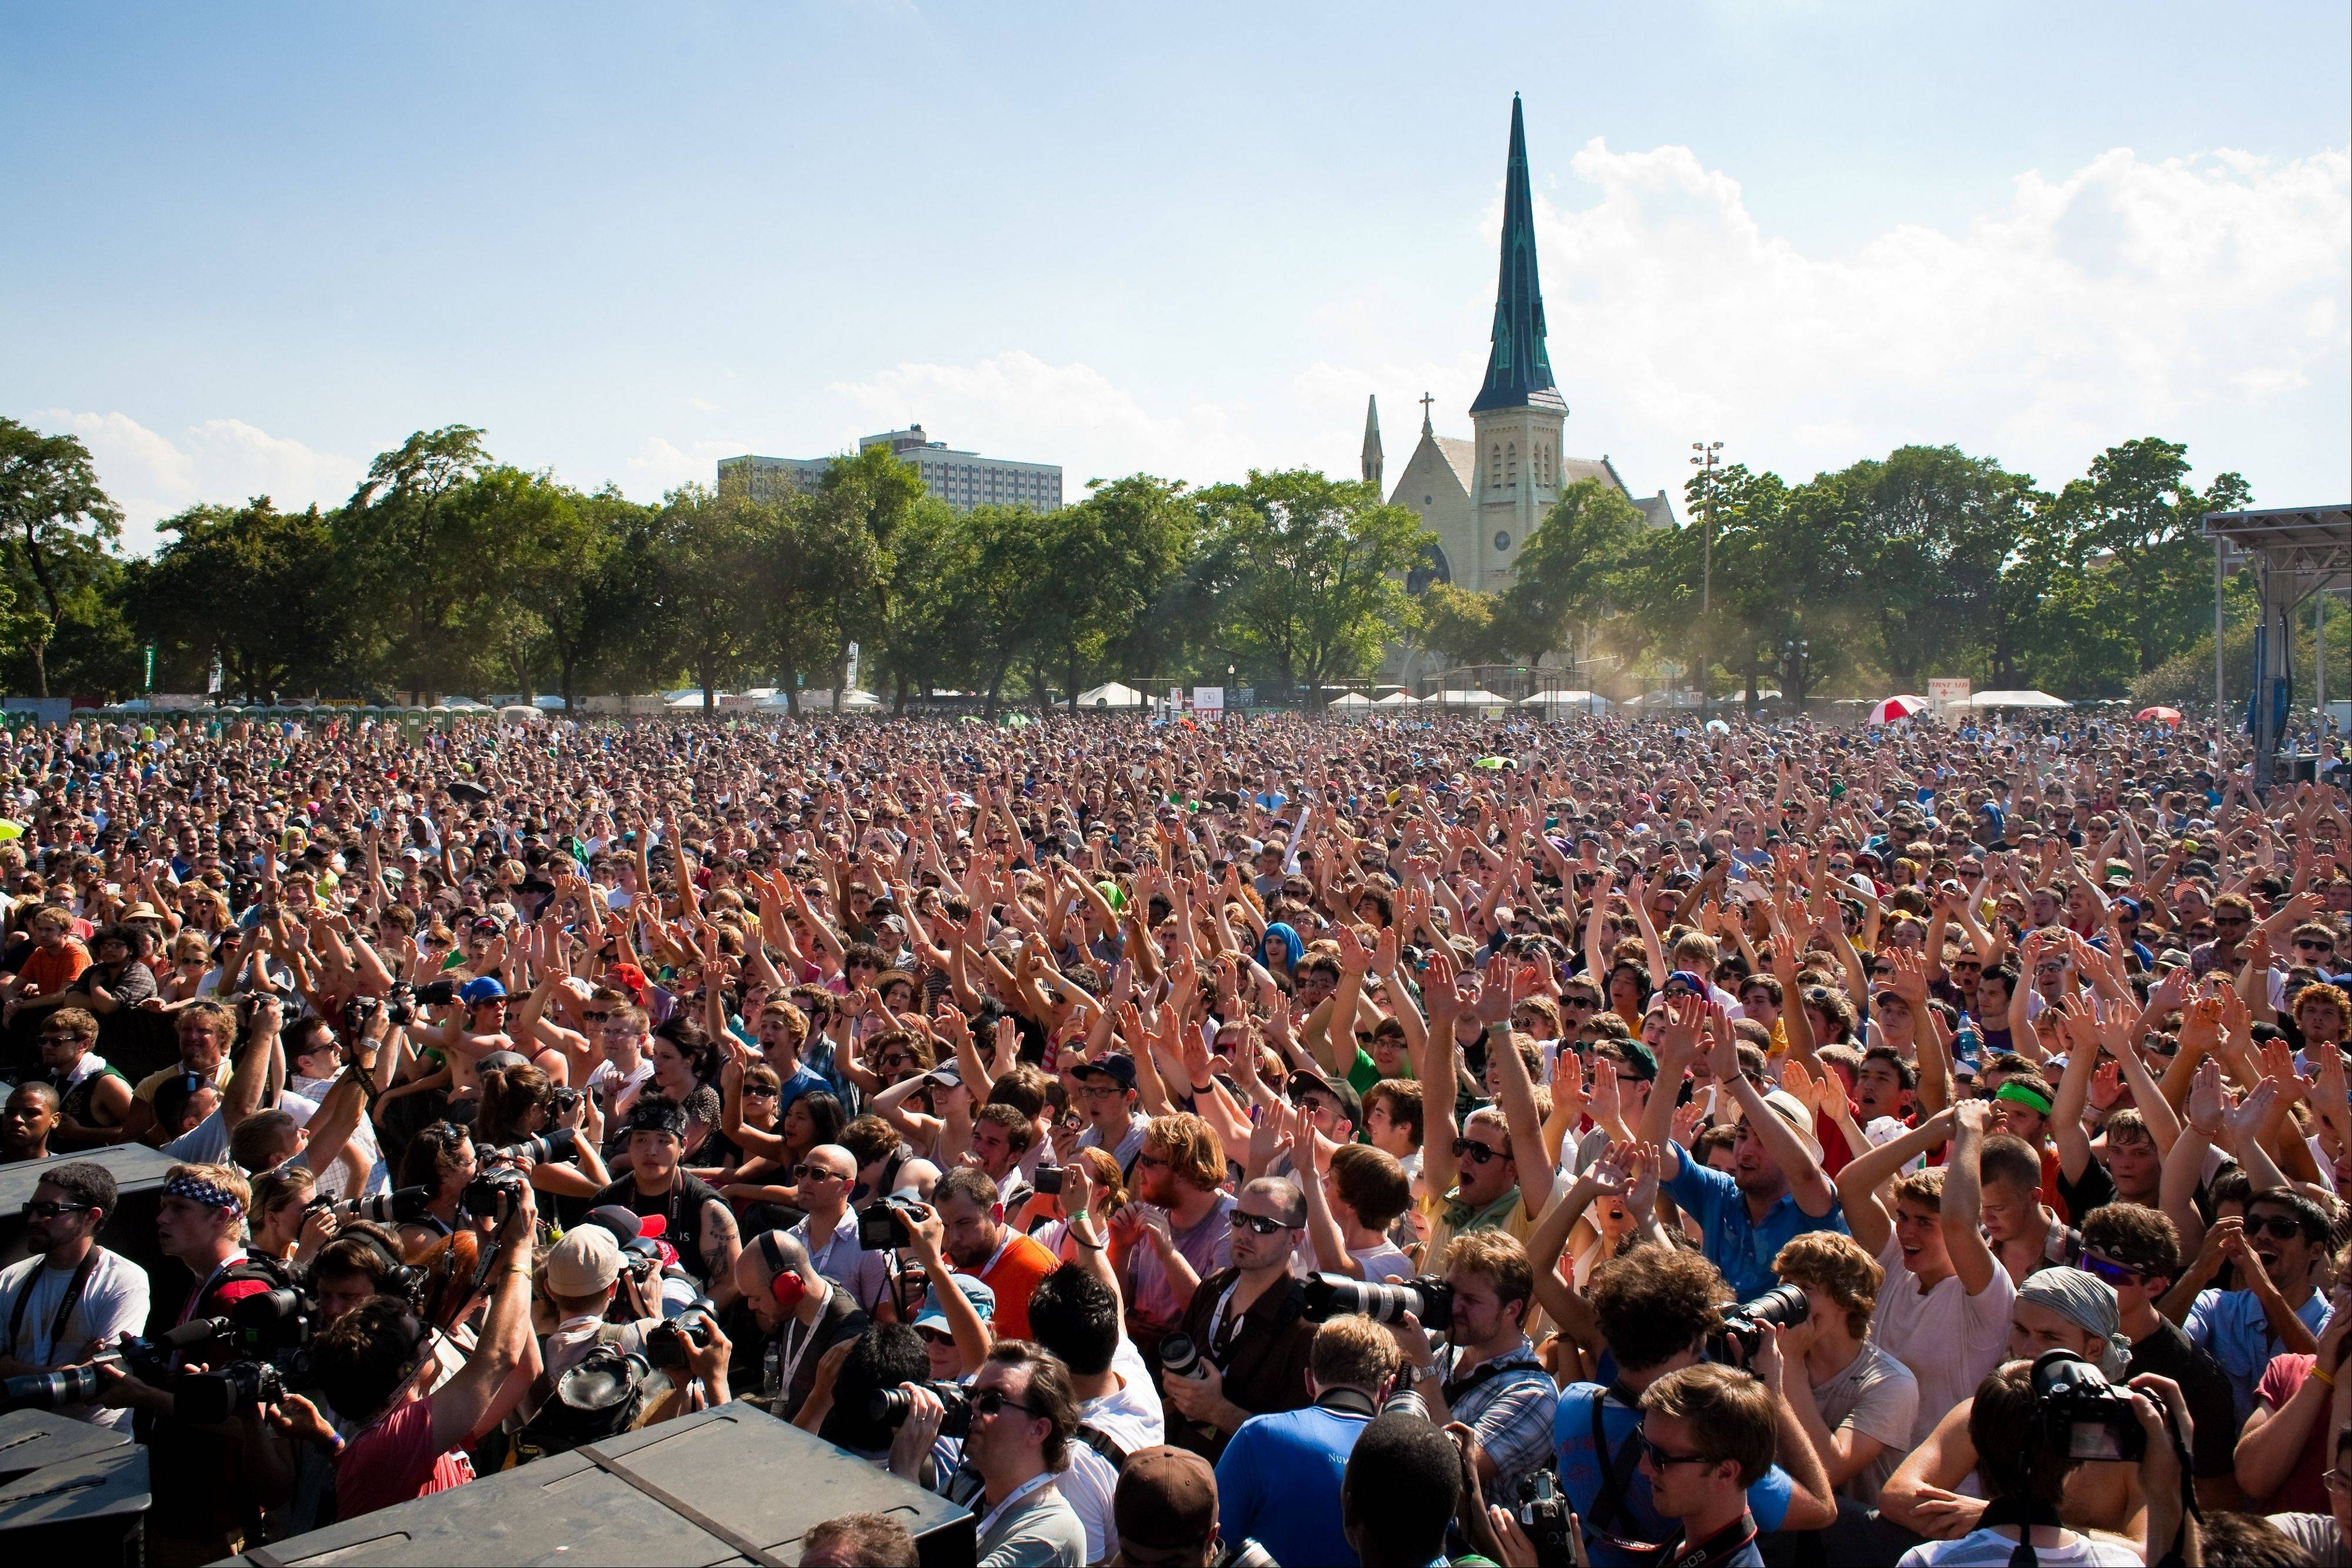 Music fans will find a variety of old and new acts at Pitchfork.